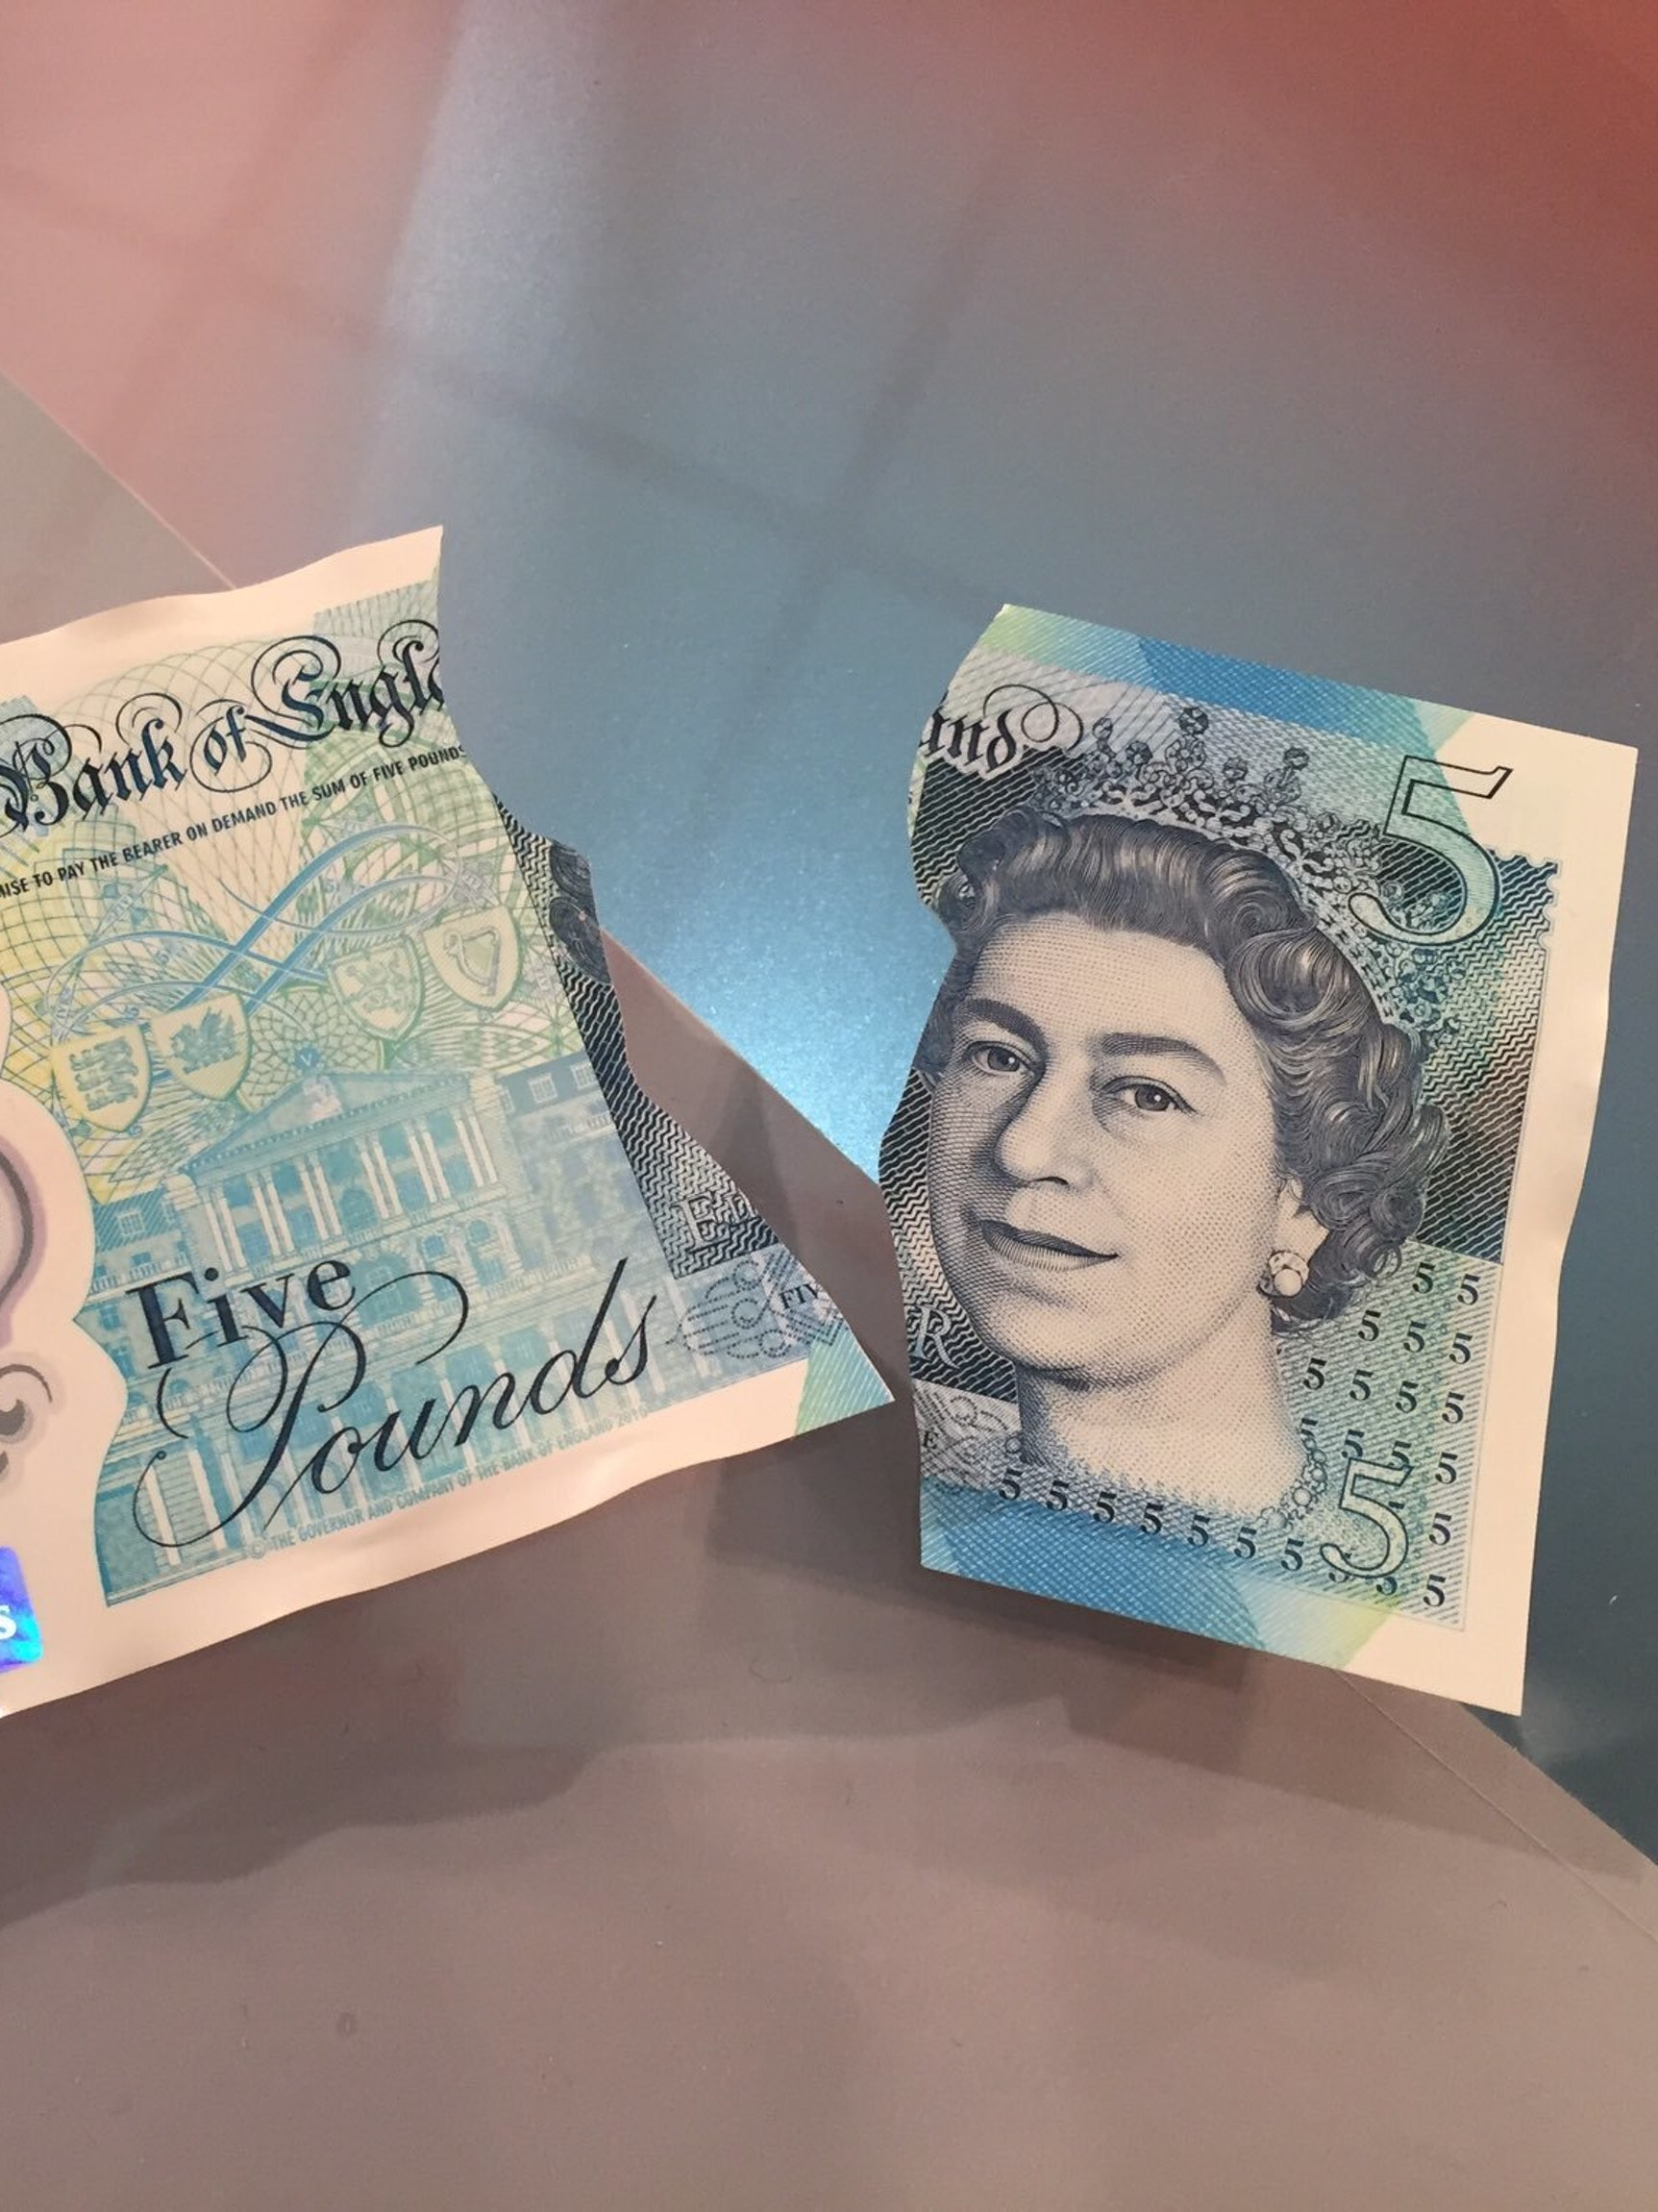 WOODSTOCK, ENGLAND - JUNE 02: The new polymer £5 note featuring Sir Winston Churchill is dipped in liquid as it is unveiled at Blenheim Palace on June 2, 2016 in Woodstock, England. The new fiver will be issued in September, and in a break from the current paper notes it will be printed on polymer, a thin flexible plastic film, which is seen as more durable and more secure. (Photo by Joe Giddens - WPA Pool/Getty Images)